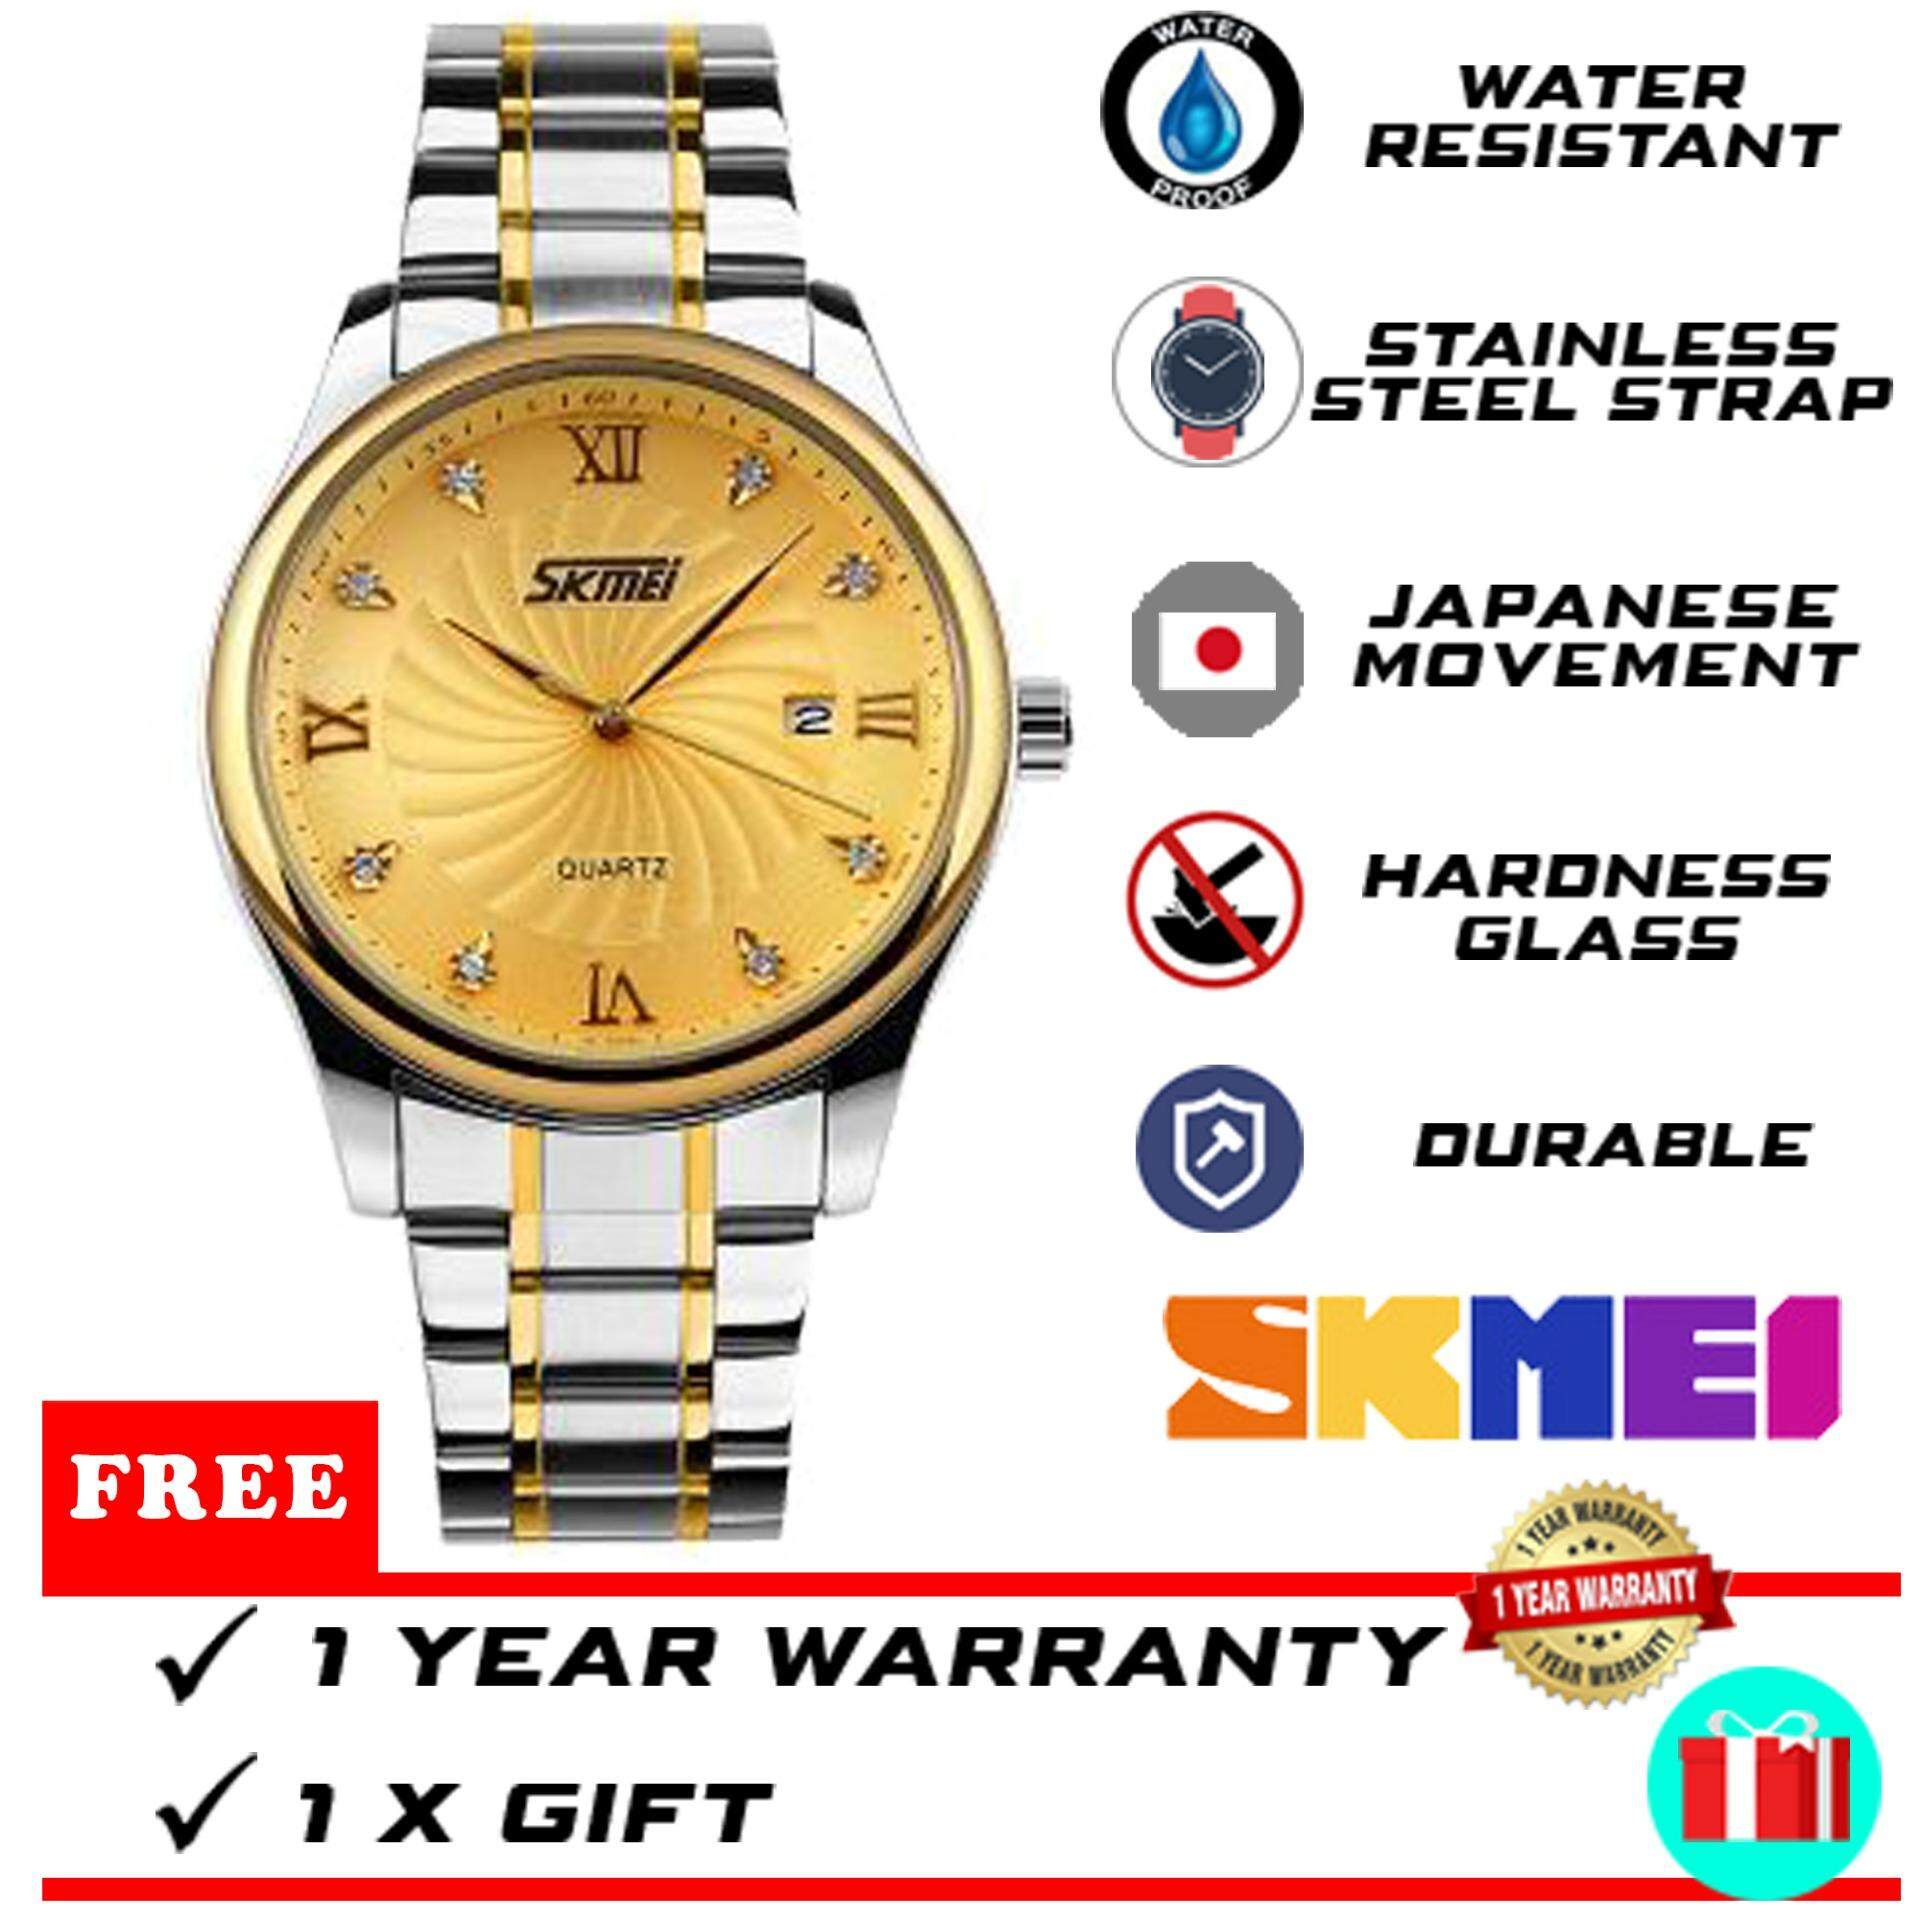 Original SKMEI Brand WTH-418 Classic Quartz Calendar Shockproof Waterproof Business Stainless Steel Men Watch [FREE GIFT & READY STOCK] Malaysia